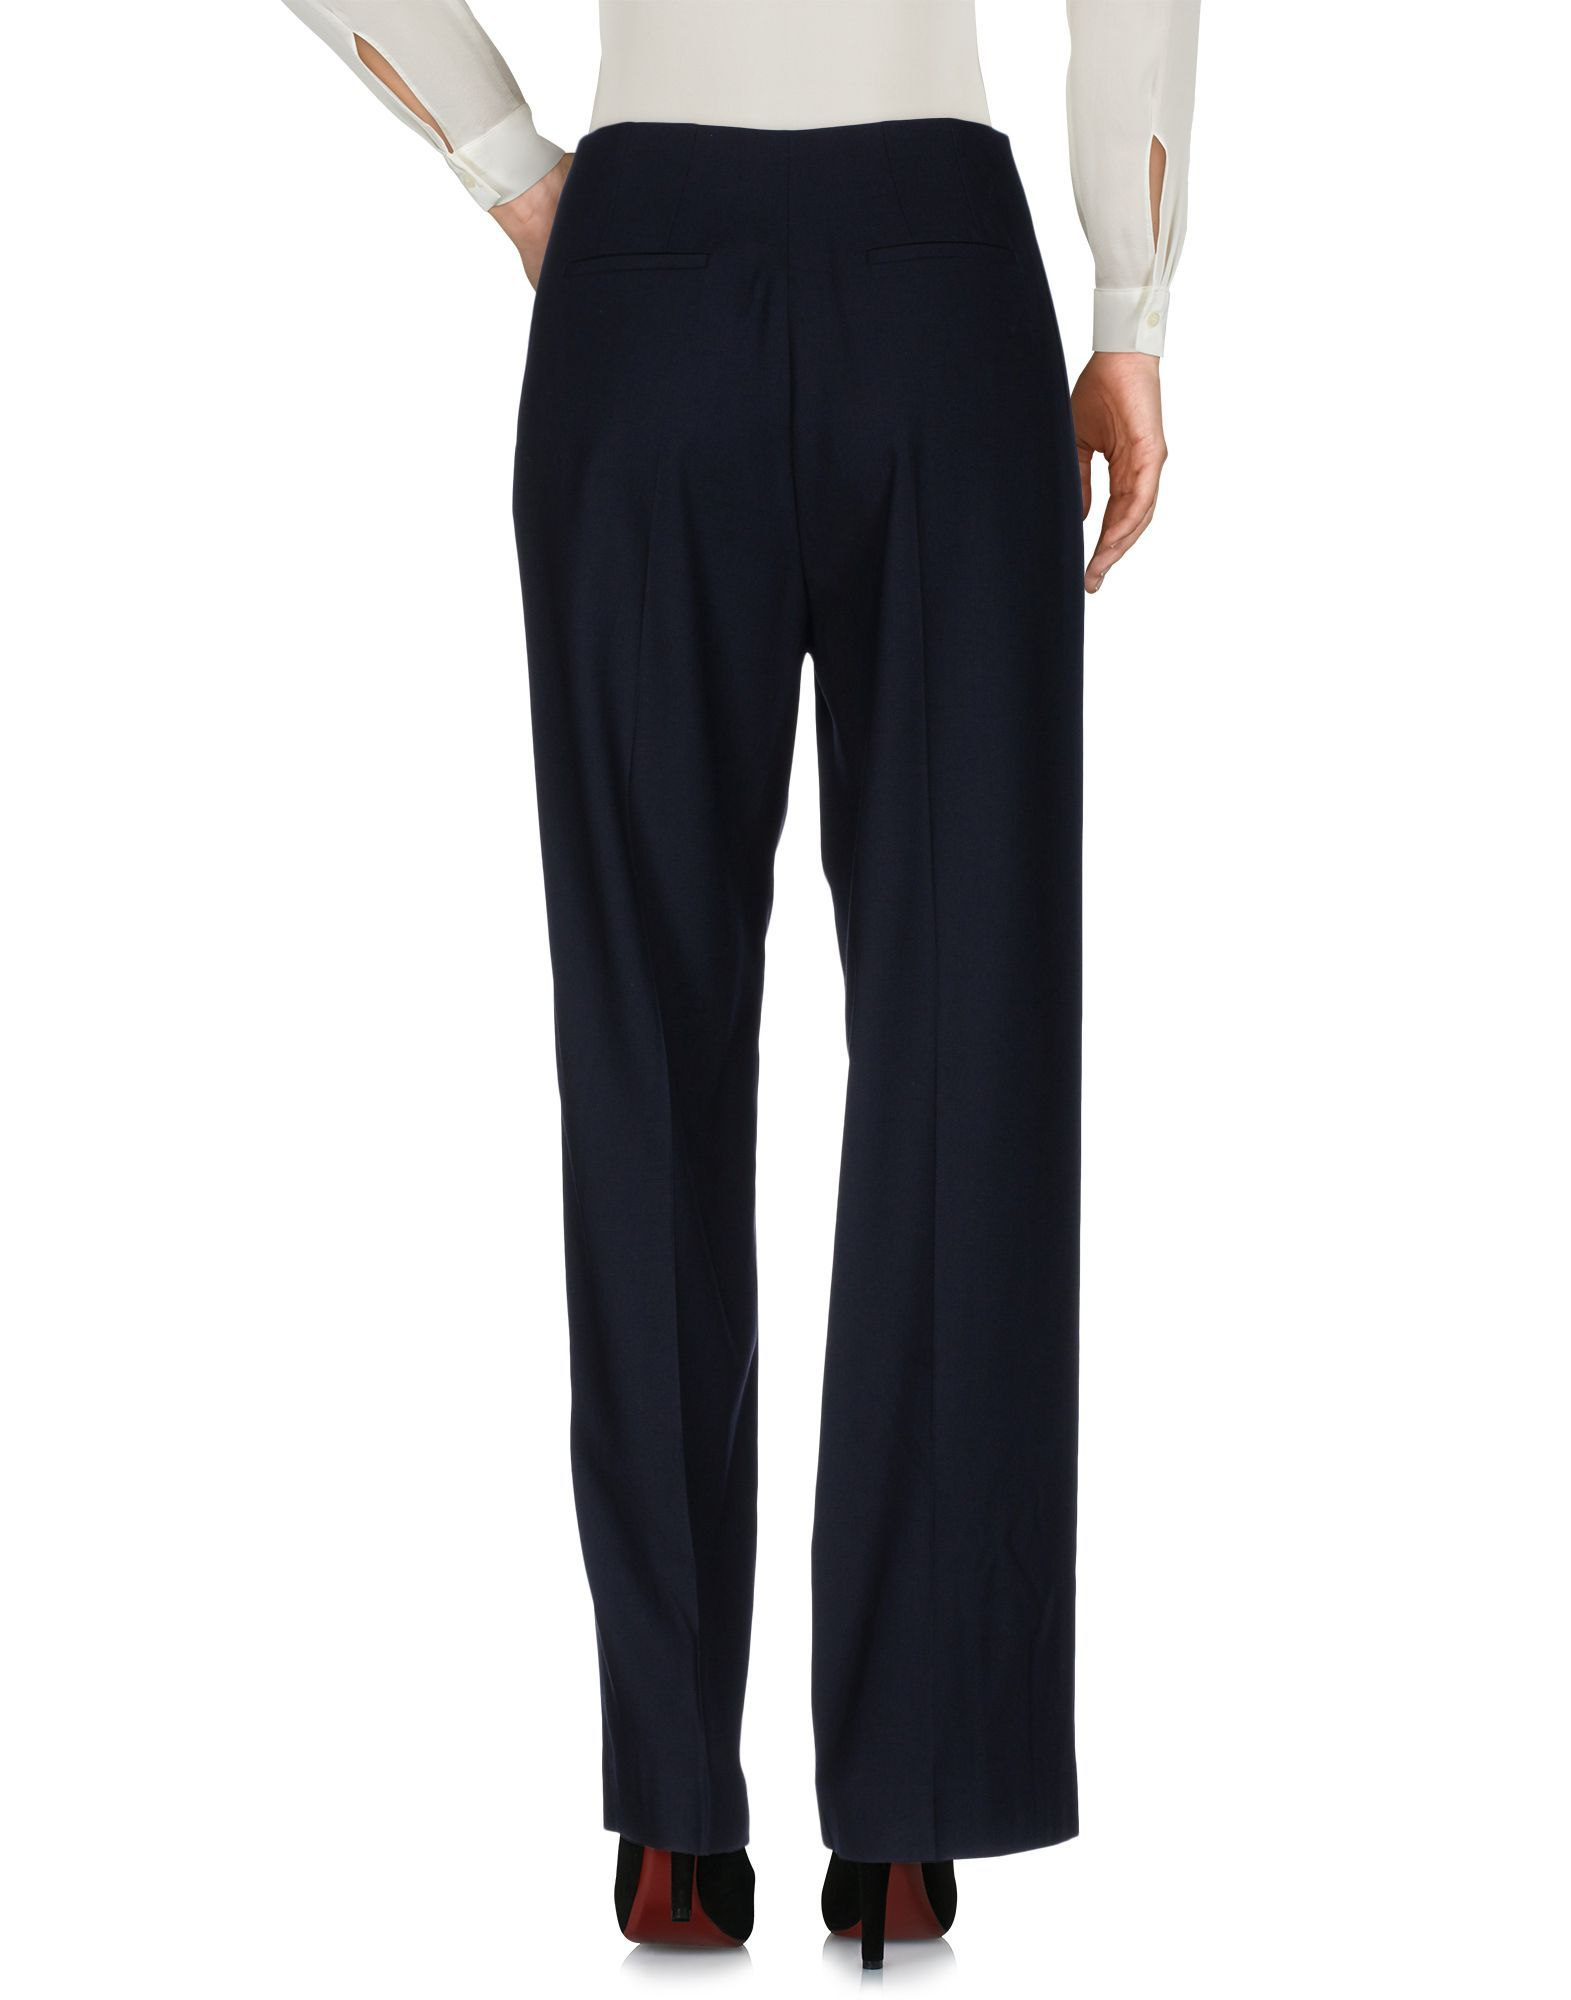 Lanvin Dark Blue High Waisted Trousers